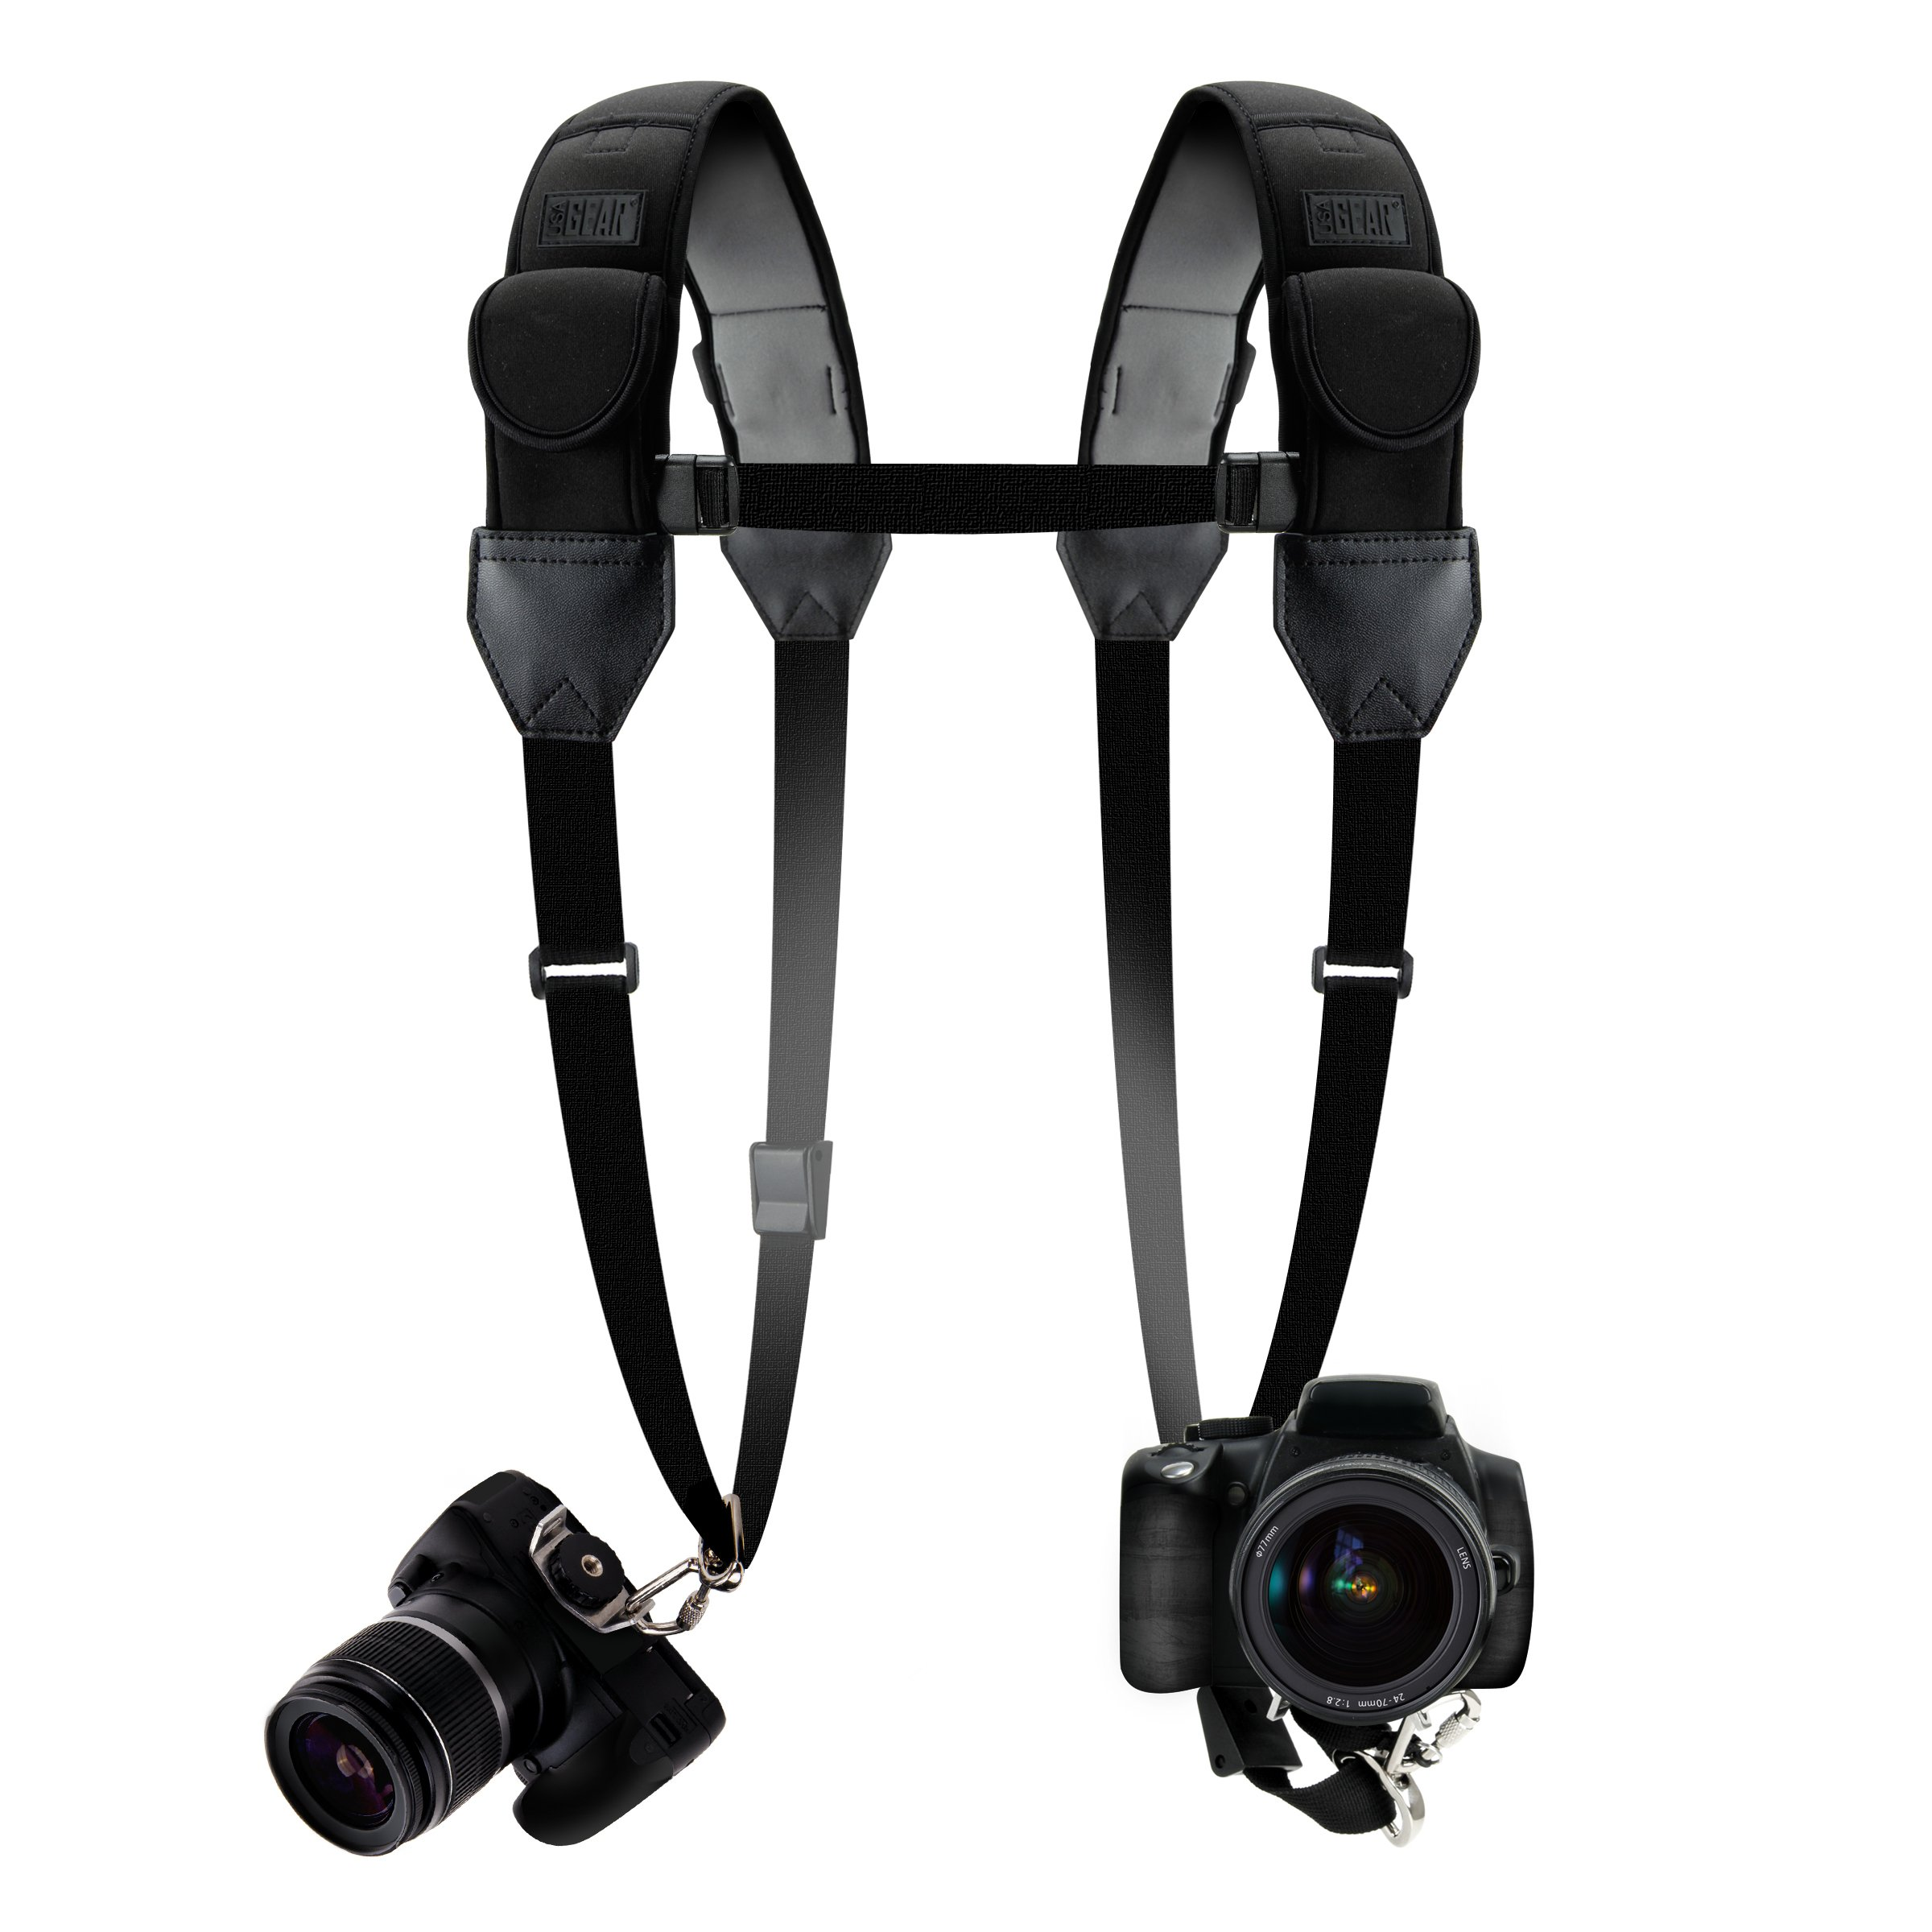 USA Gear Double Camera Harness Dual Shoulder Strap with Quick-Release Buckles, Comfortable Padded Neoprene and Accessory Pockets Works with Canon, Fujifilm, Nikon, Sony and More Cameras